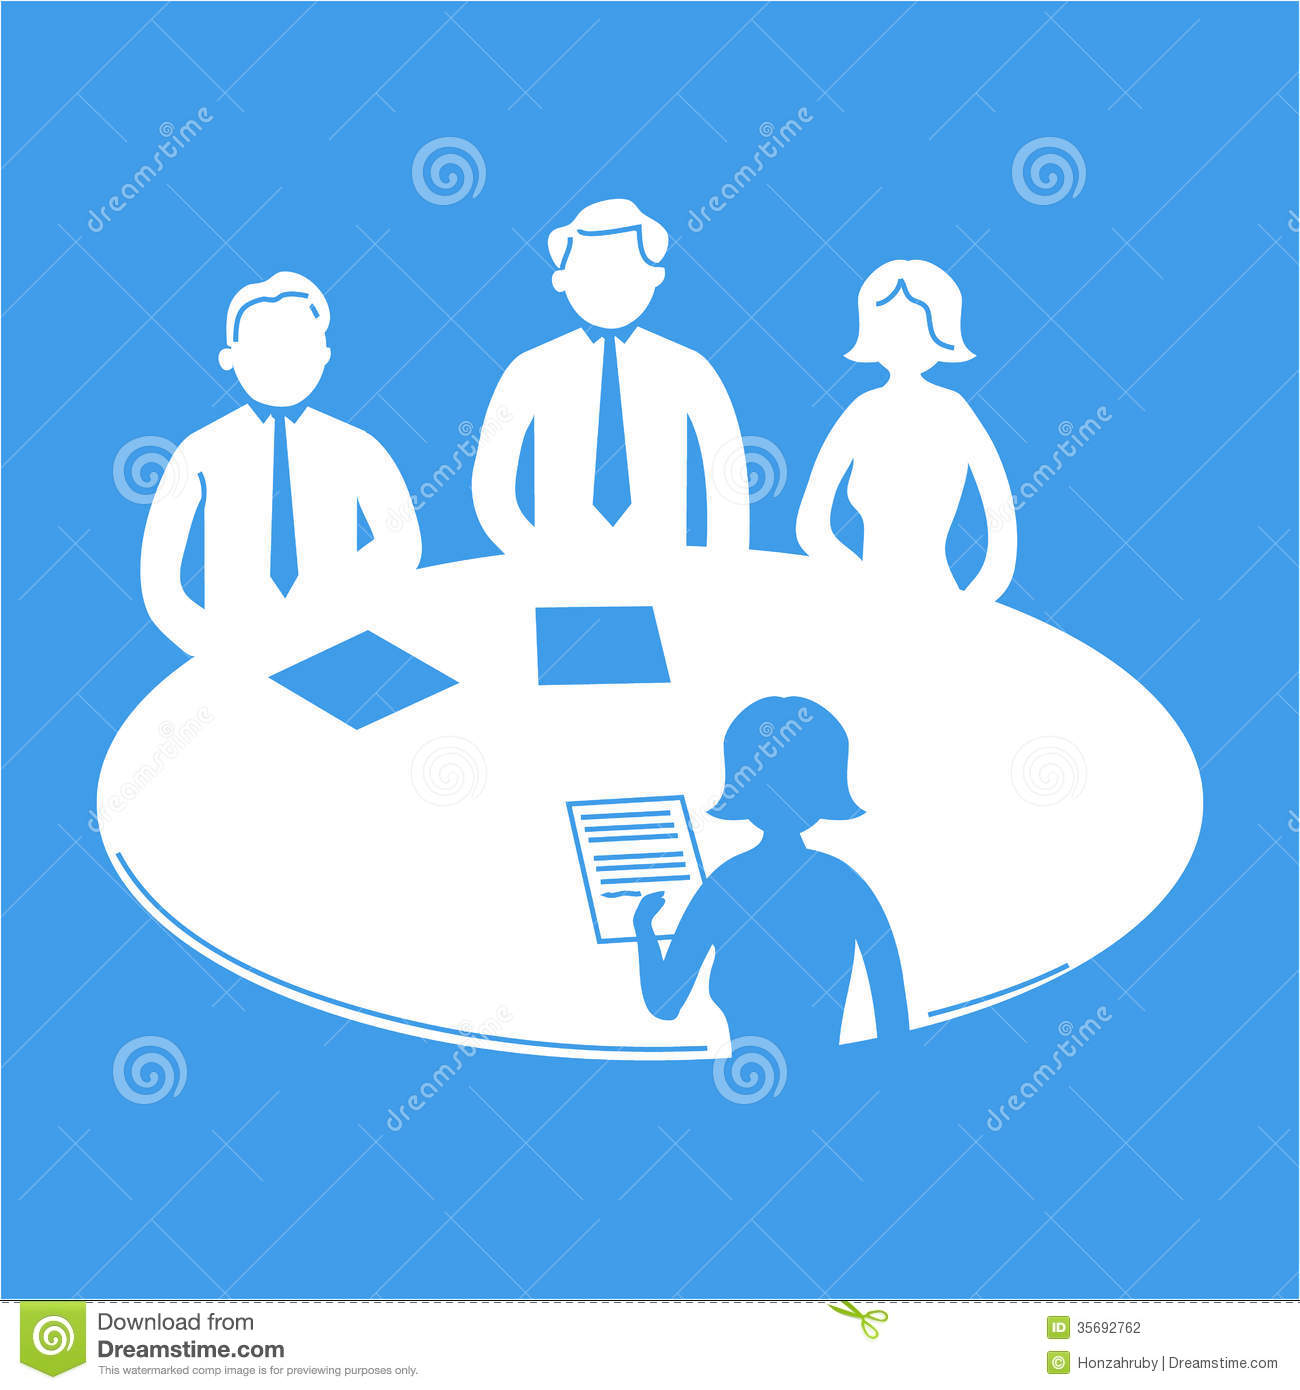 Vector Business Meeting Icon With Pictograms Of People Around Table  image #260